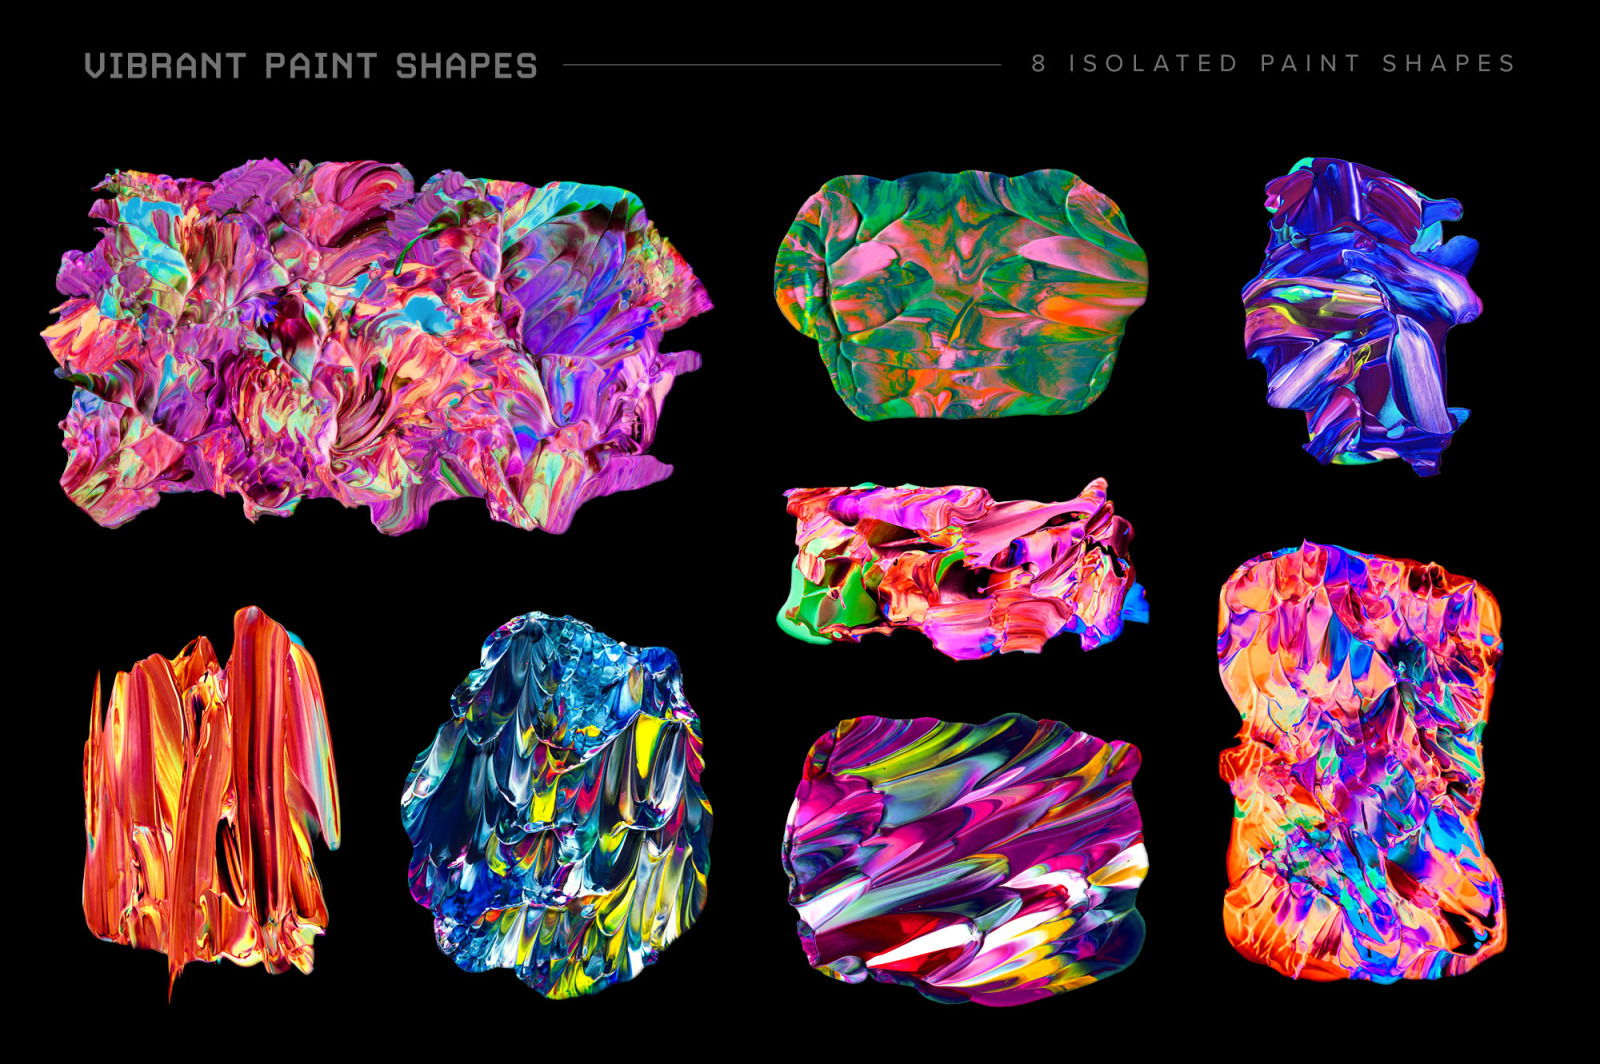 Vibrant Paint Shapes